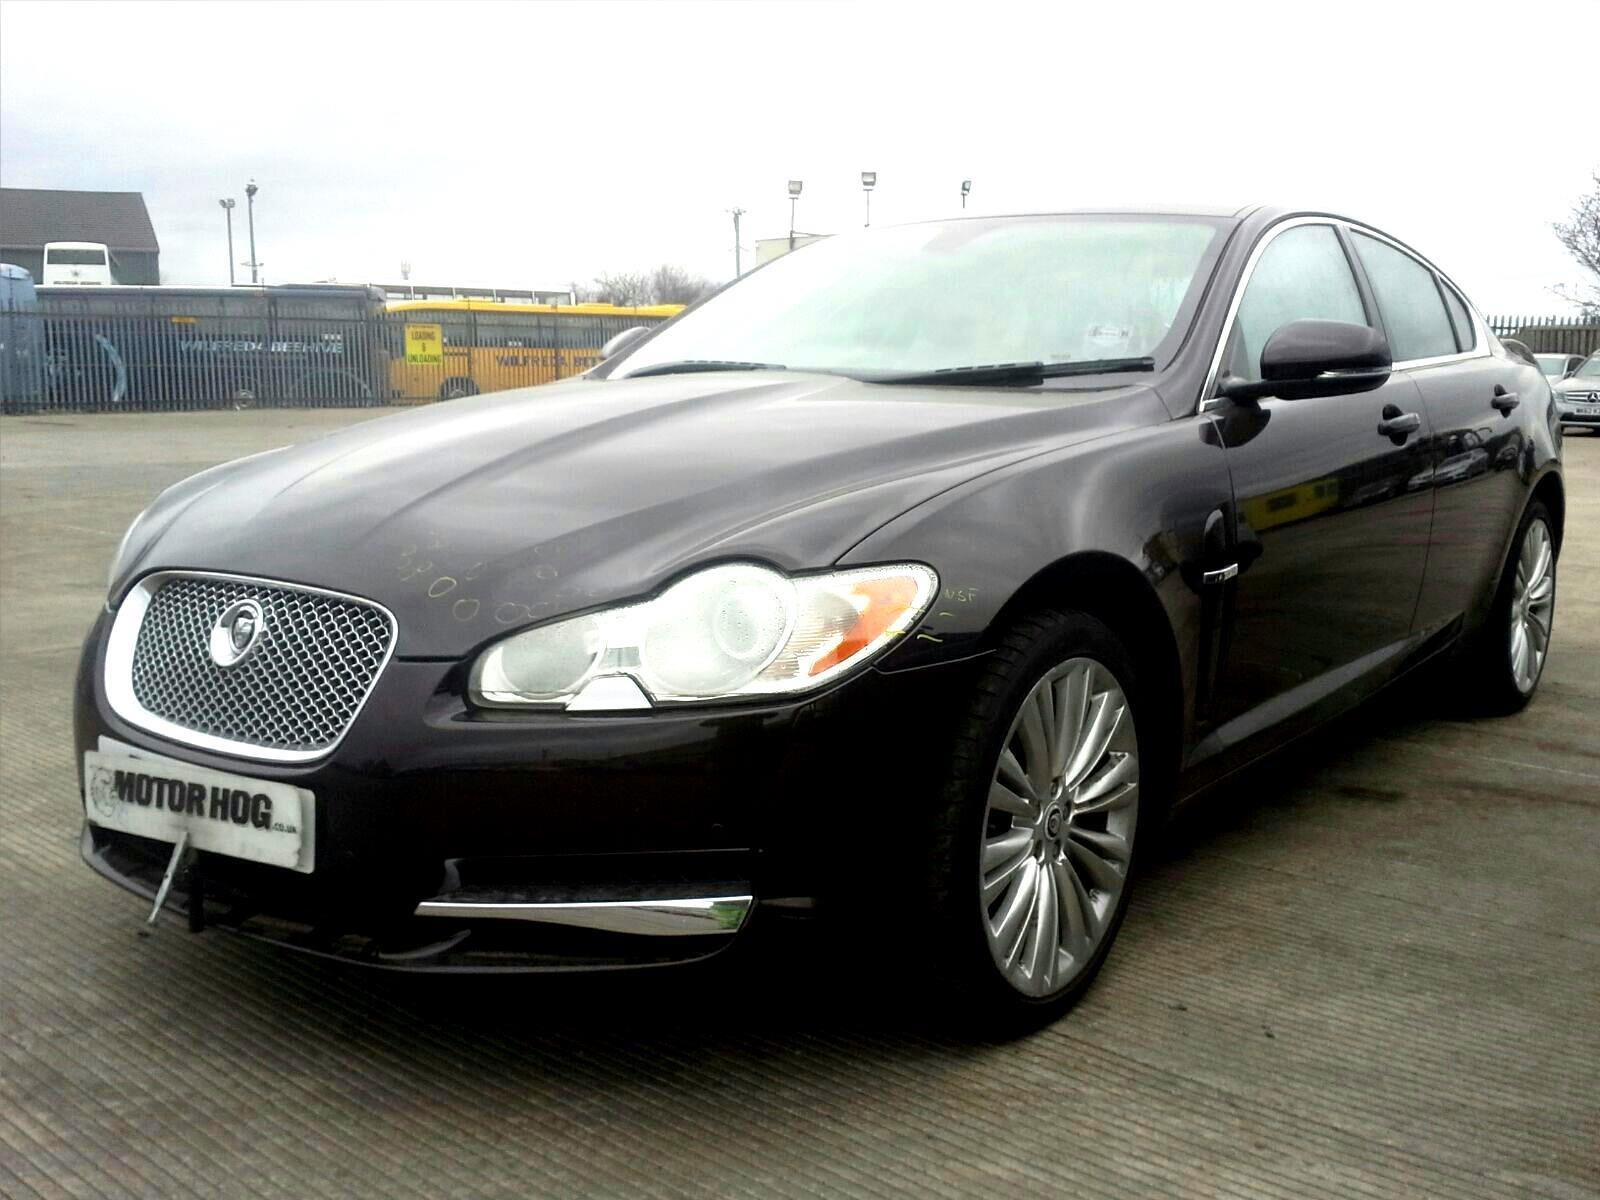 northeast trade fs edition forum classifieds buy luxury sale premium jaguar private img for xf